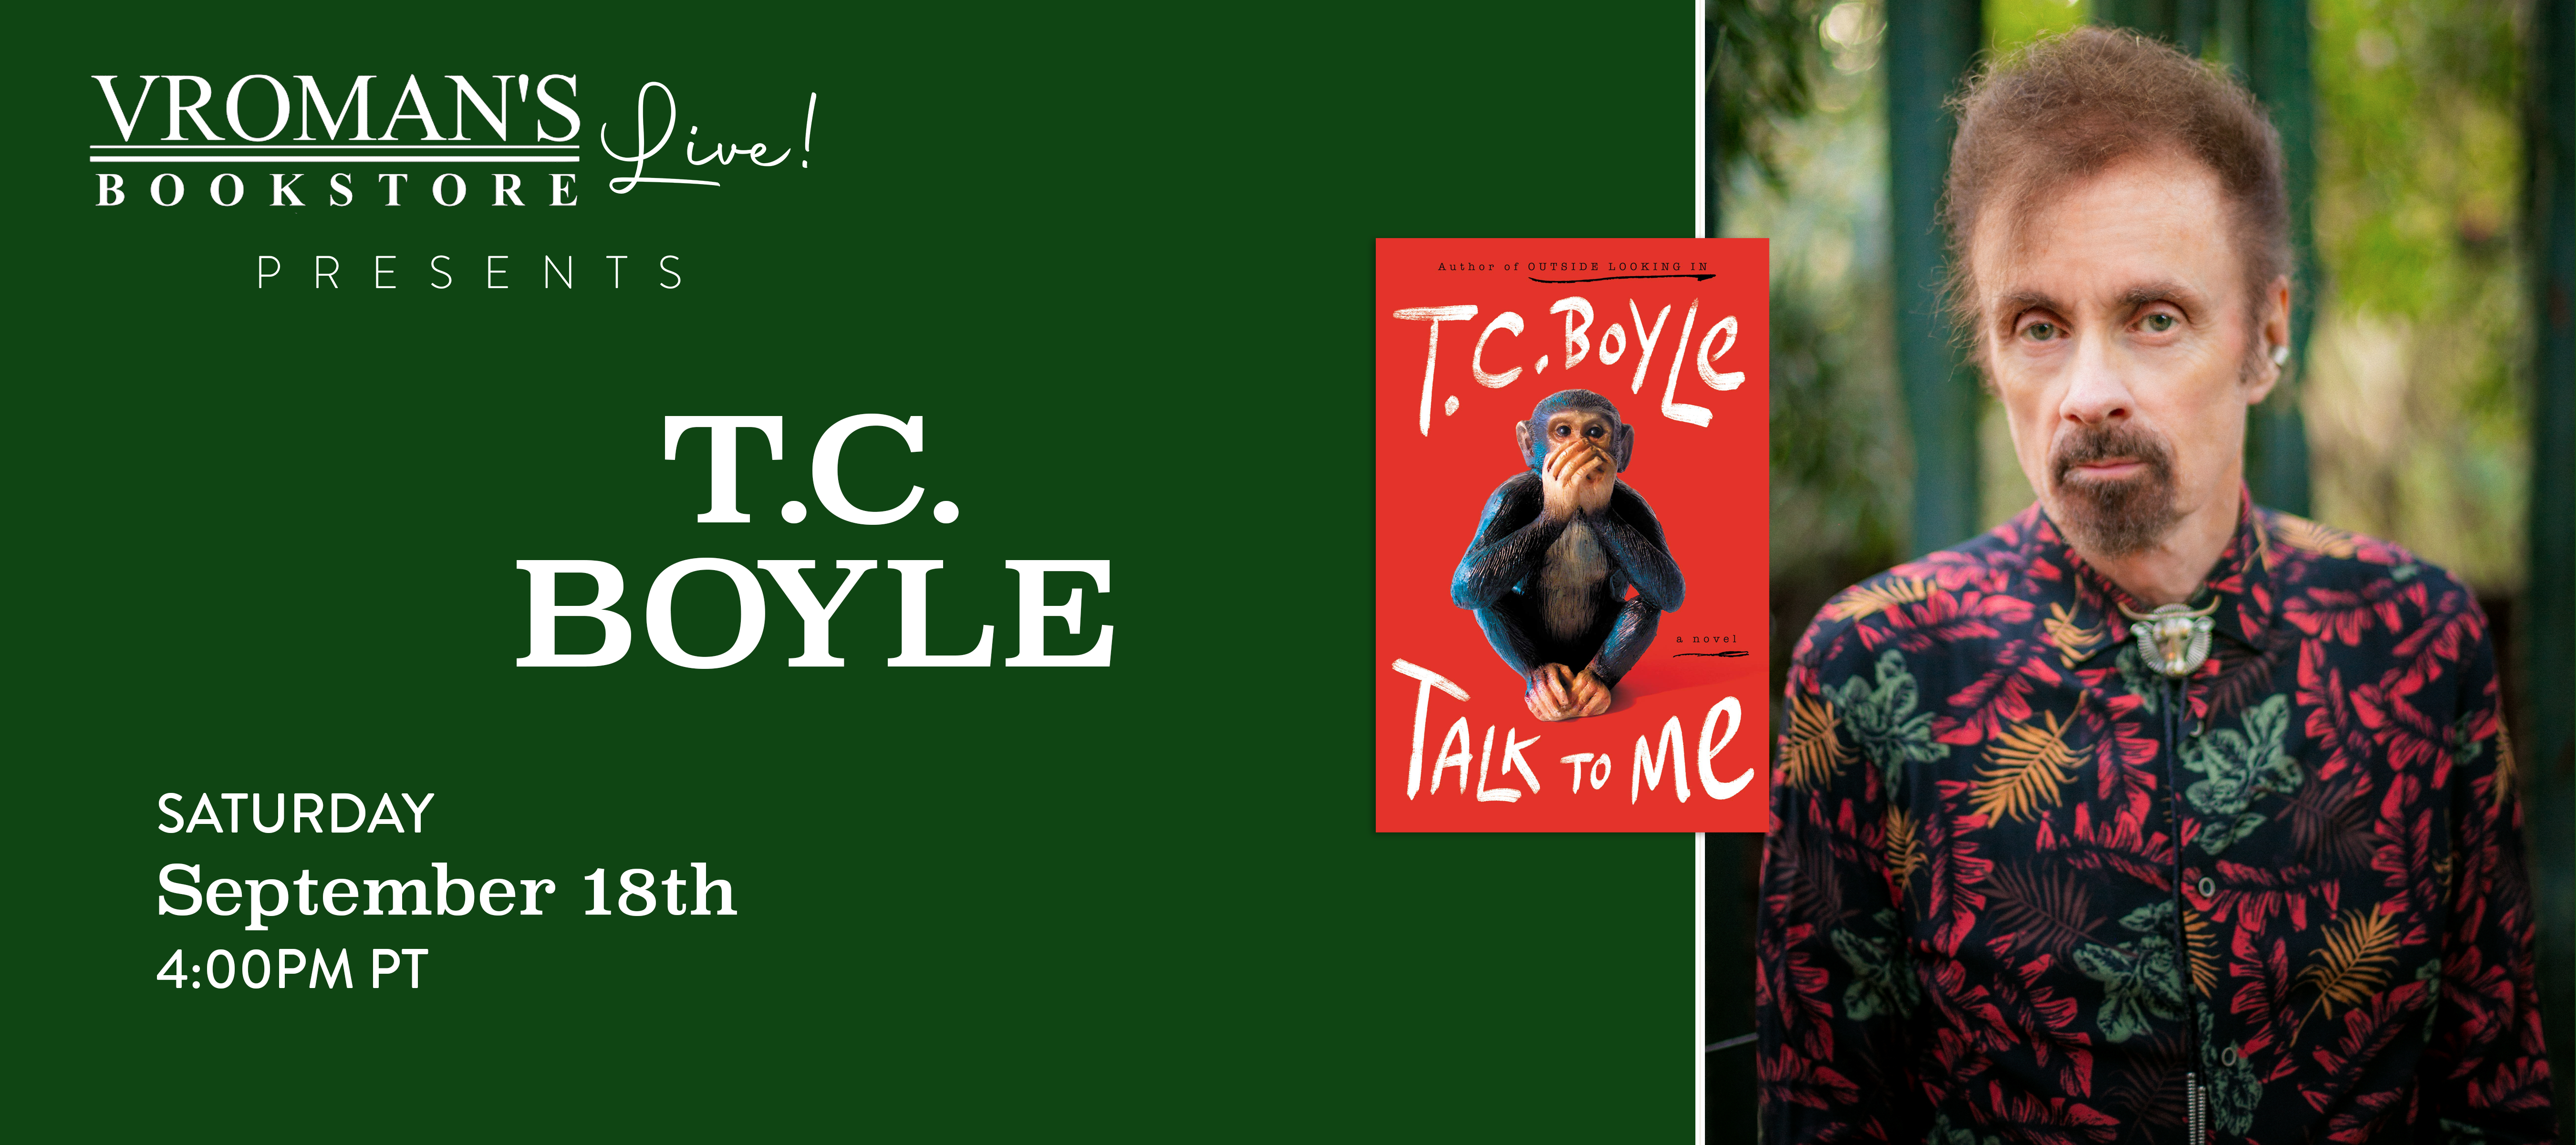 Image of green banner with details for event on Saturday, September 18, 4pm  T.C. Boyle discusses Talk to Me